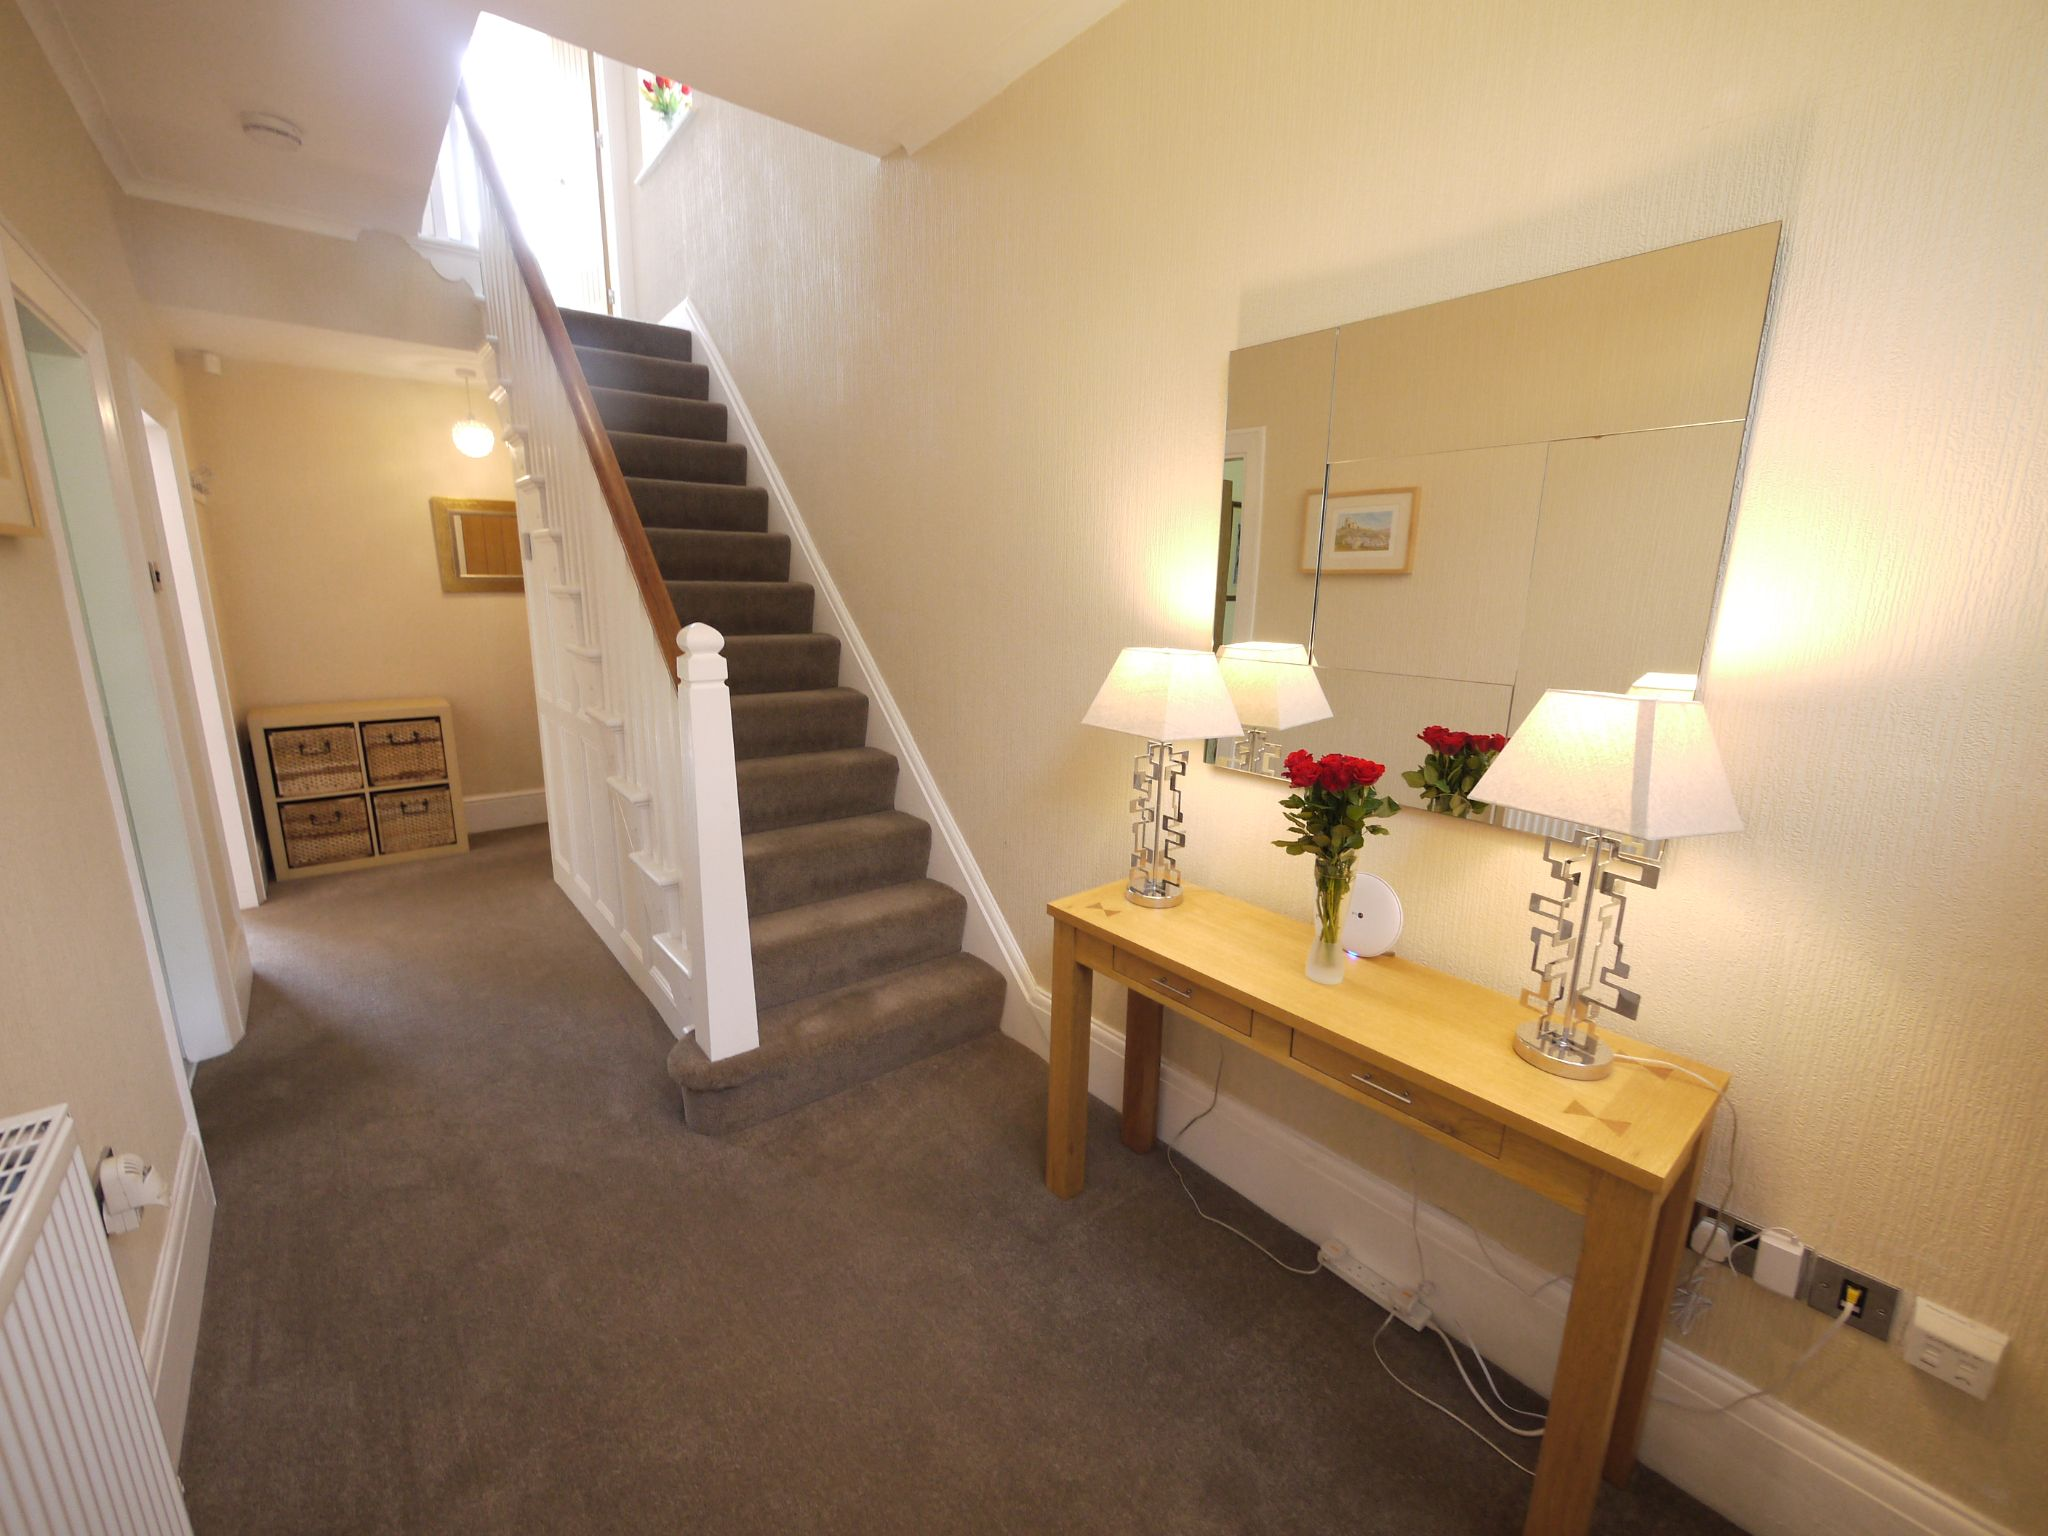 4 bedroom detached house SSTC in Halifax - Photograph 7.